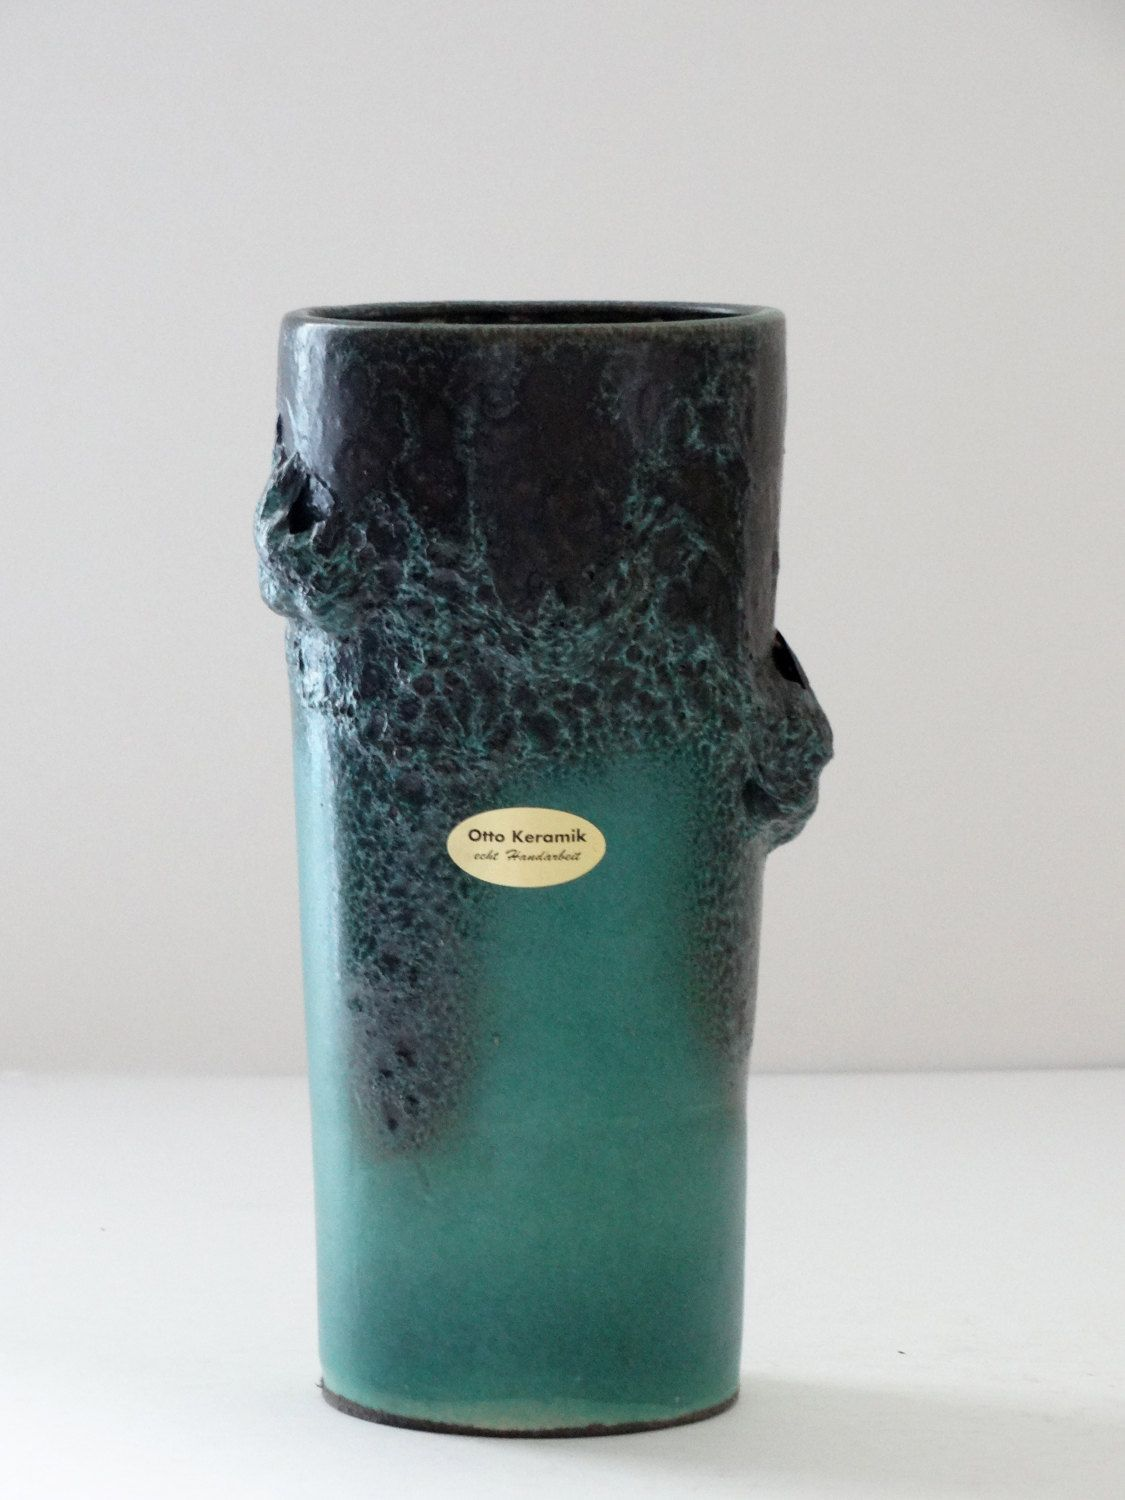 otto keramik mid century rare teal black fat lava west german vase by pastercorte on etsy. Black Bedroom Furniture Sets. Home Design Ideas